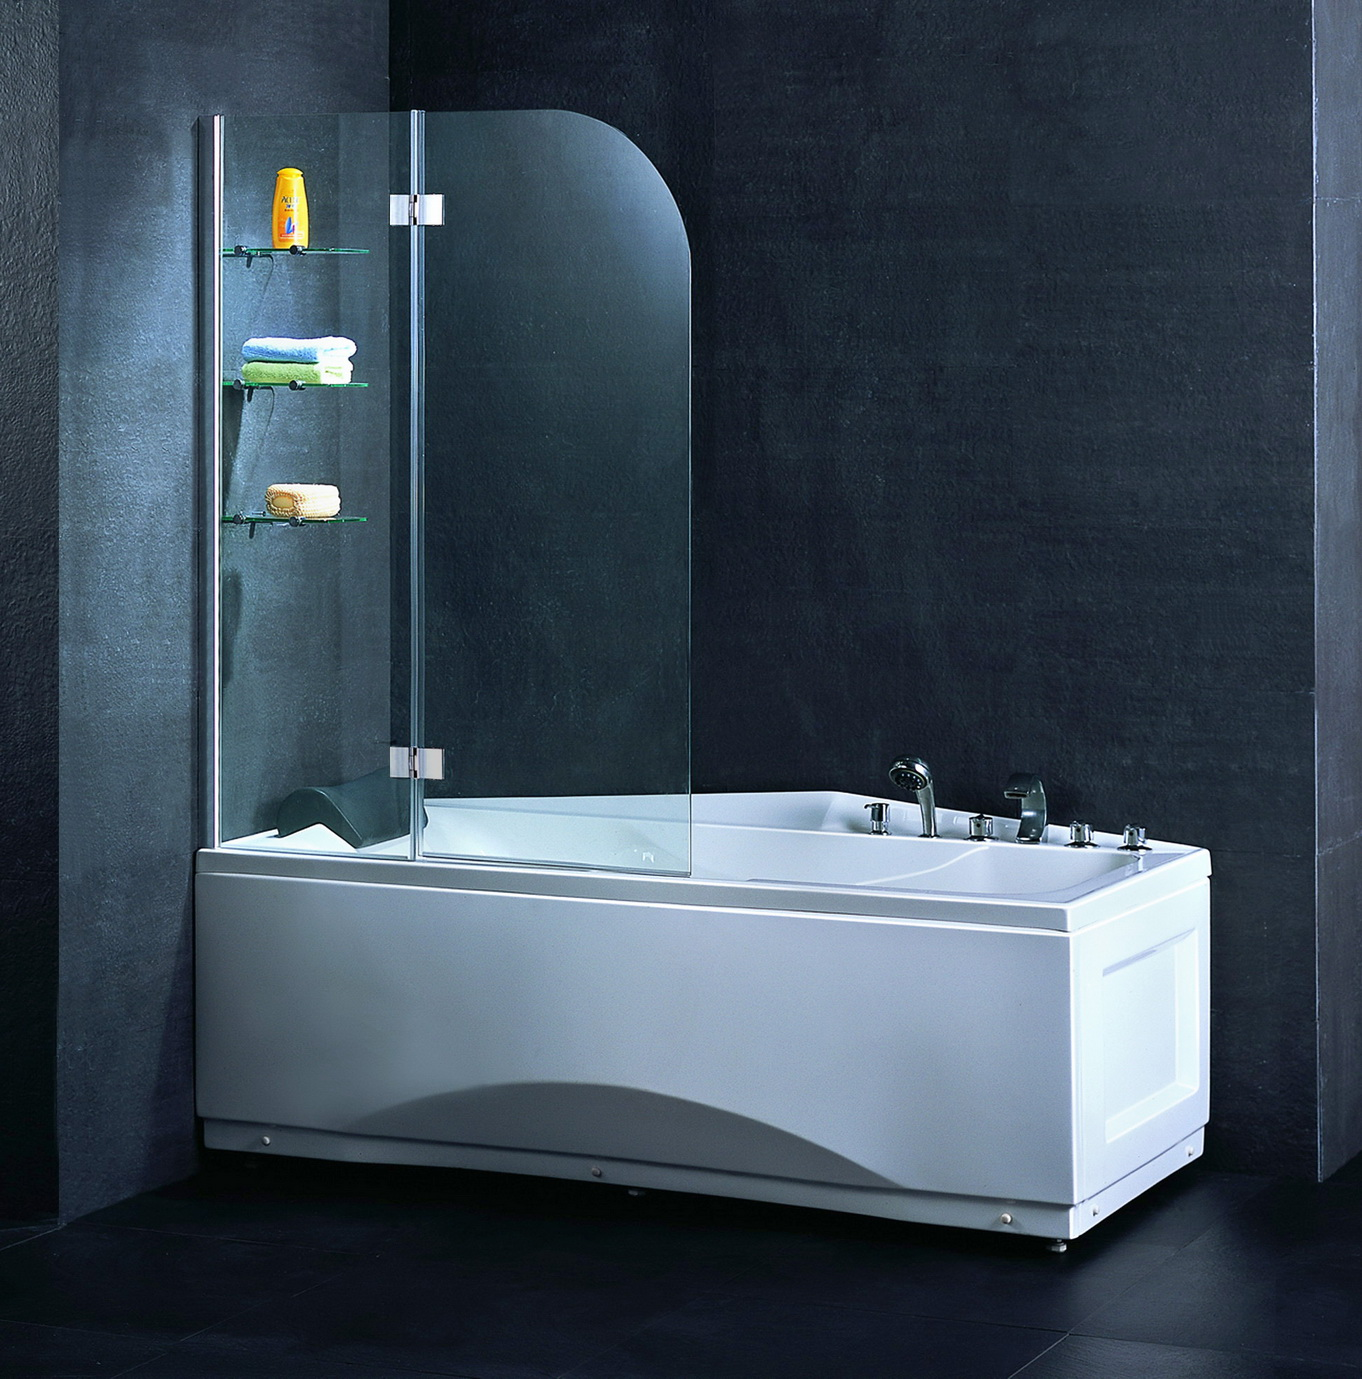 Self Cleaning Glass Shower Cabin Walk In Tempered Glass Shower Doors